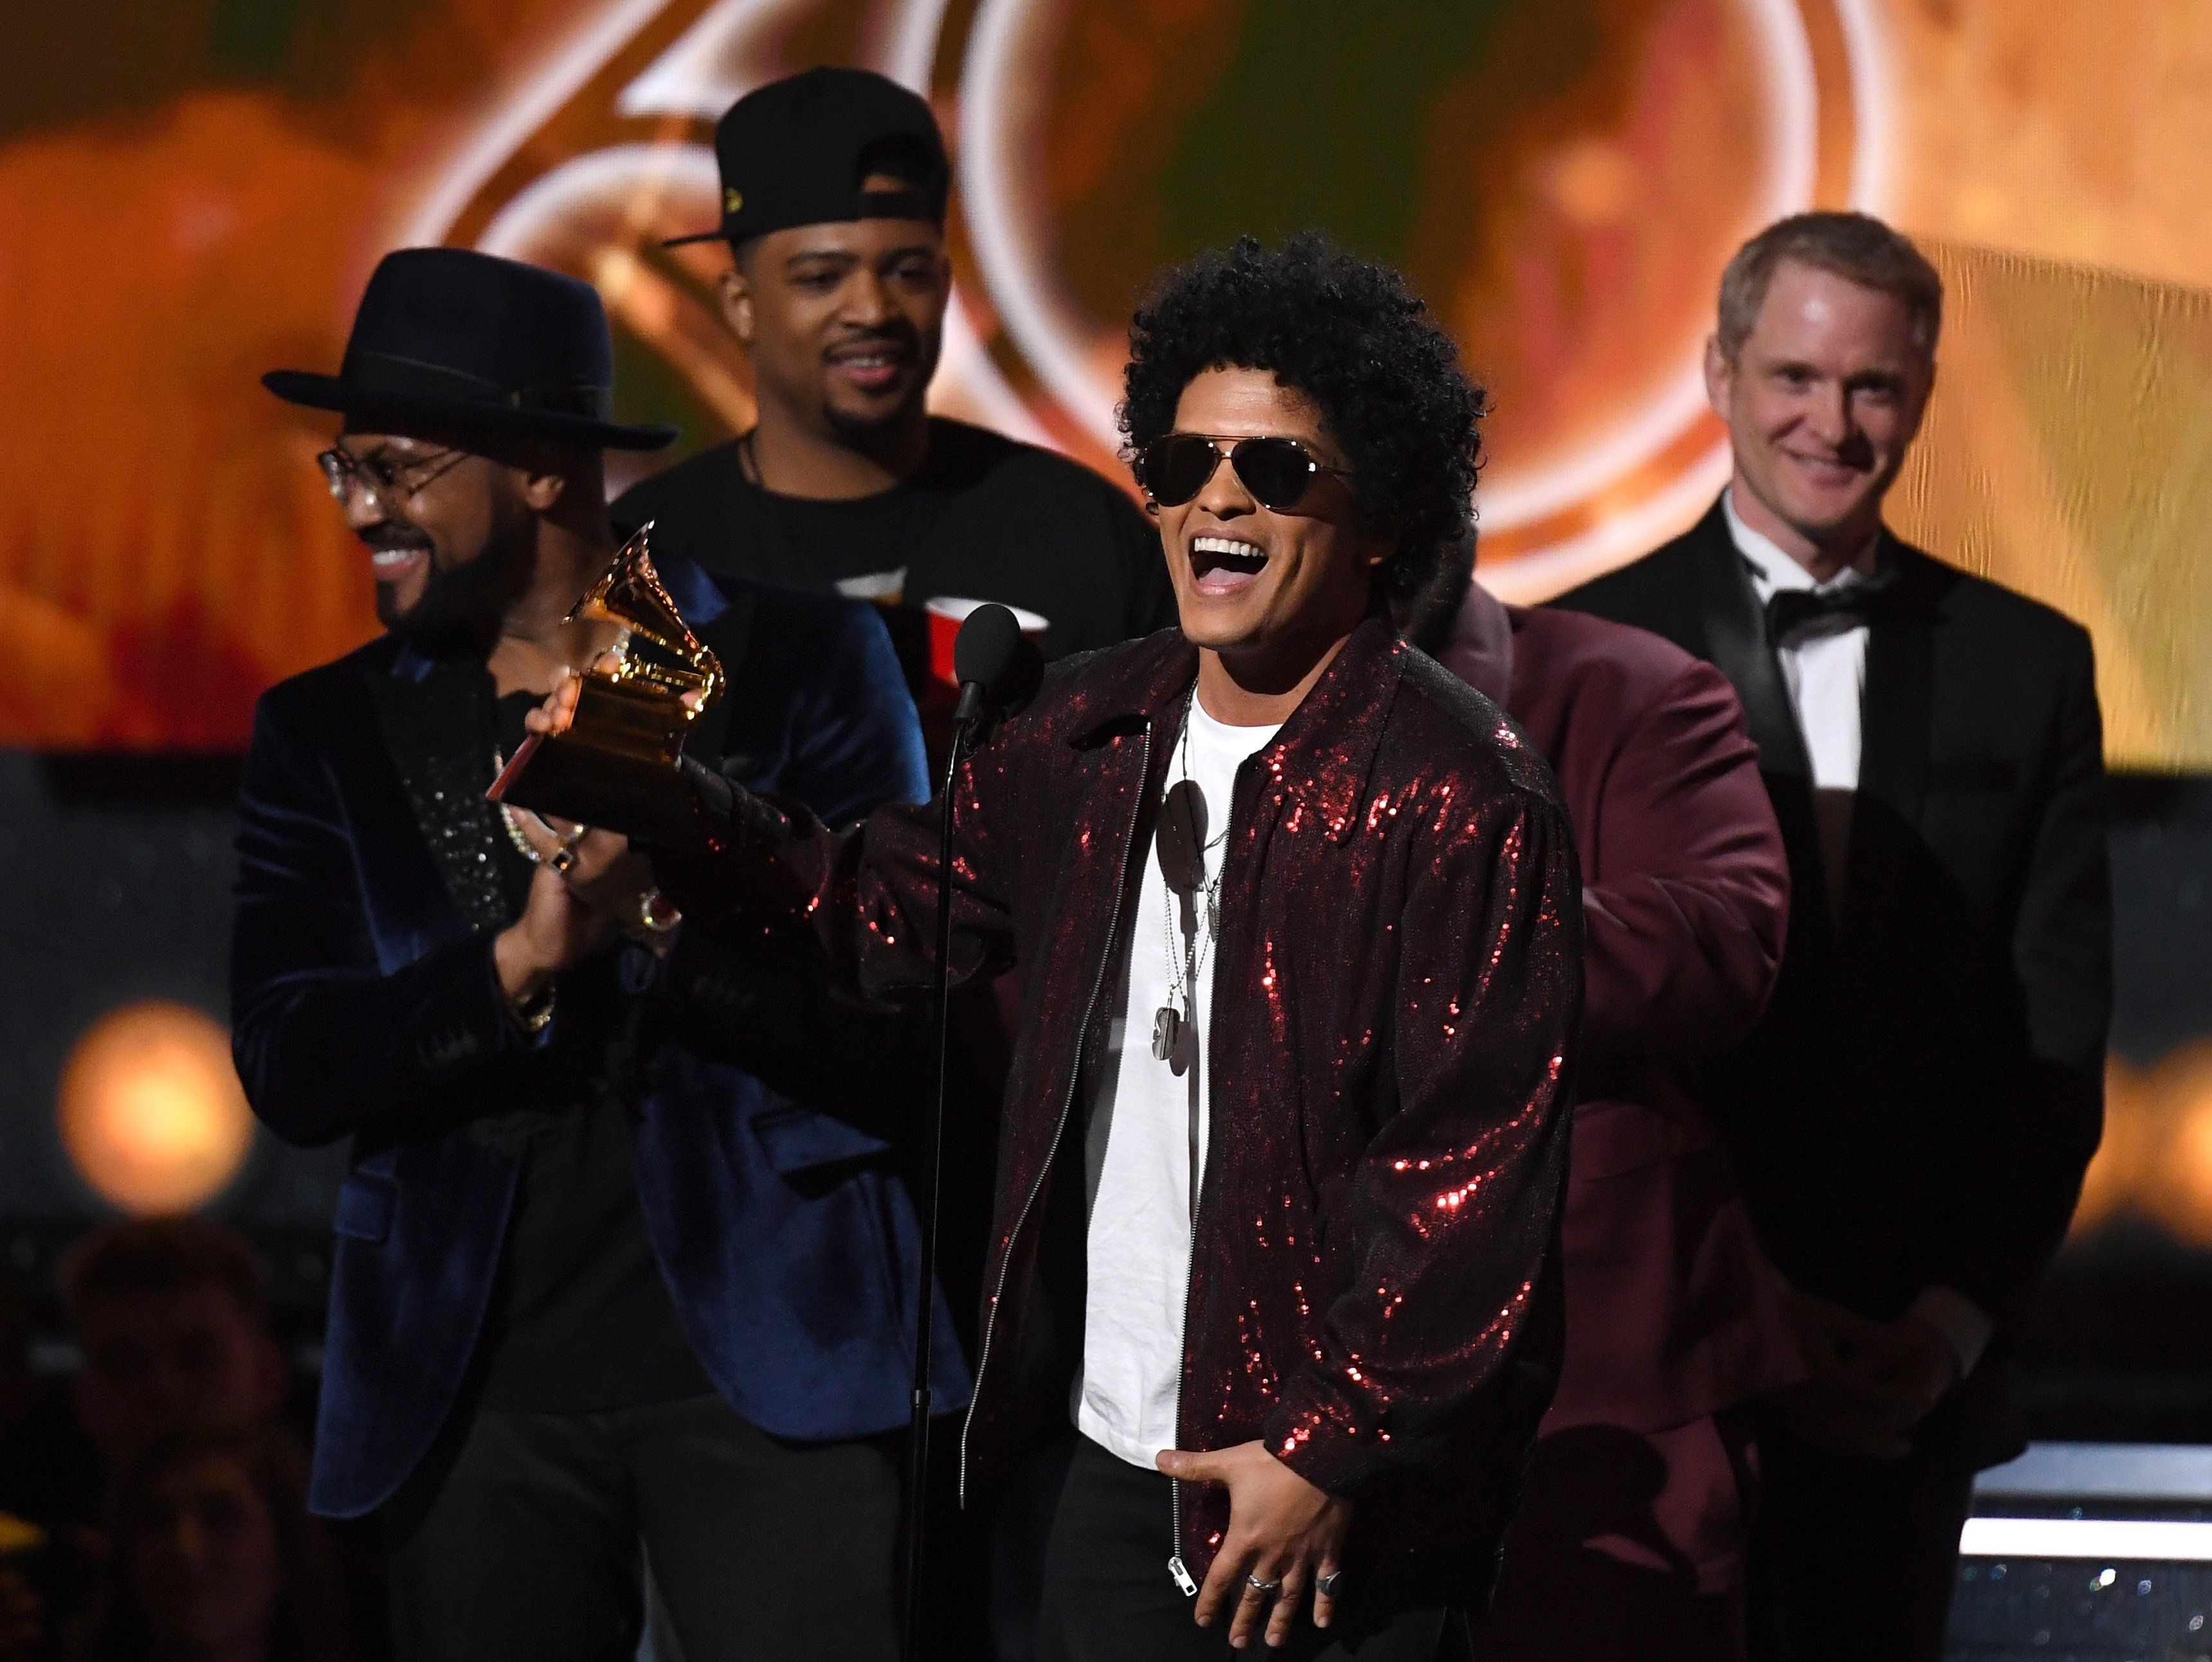 Jay-Z's Loss Is Bruno Mars' Gain: All The Winners From This Year's Grammys